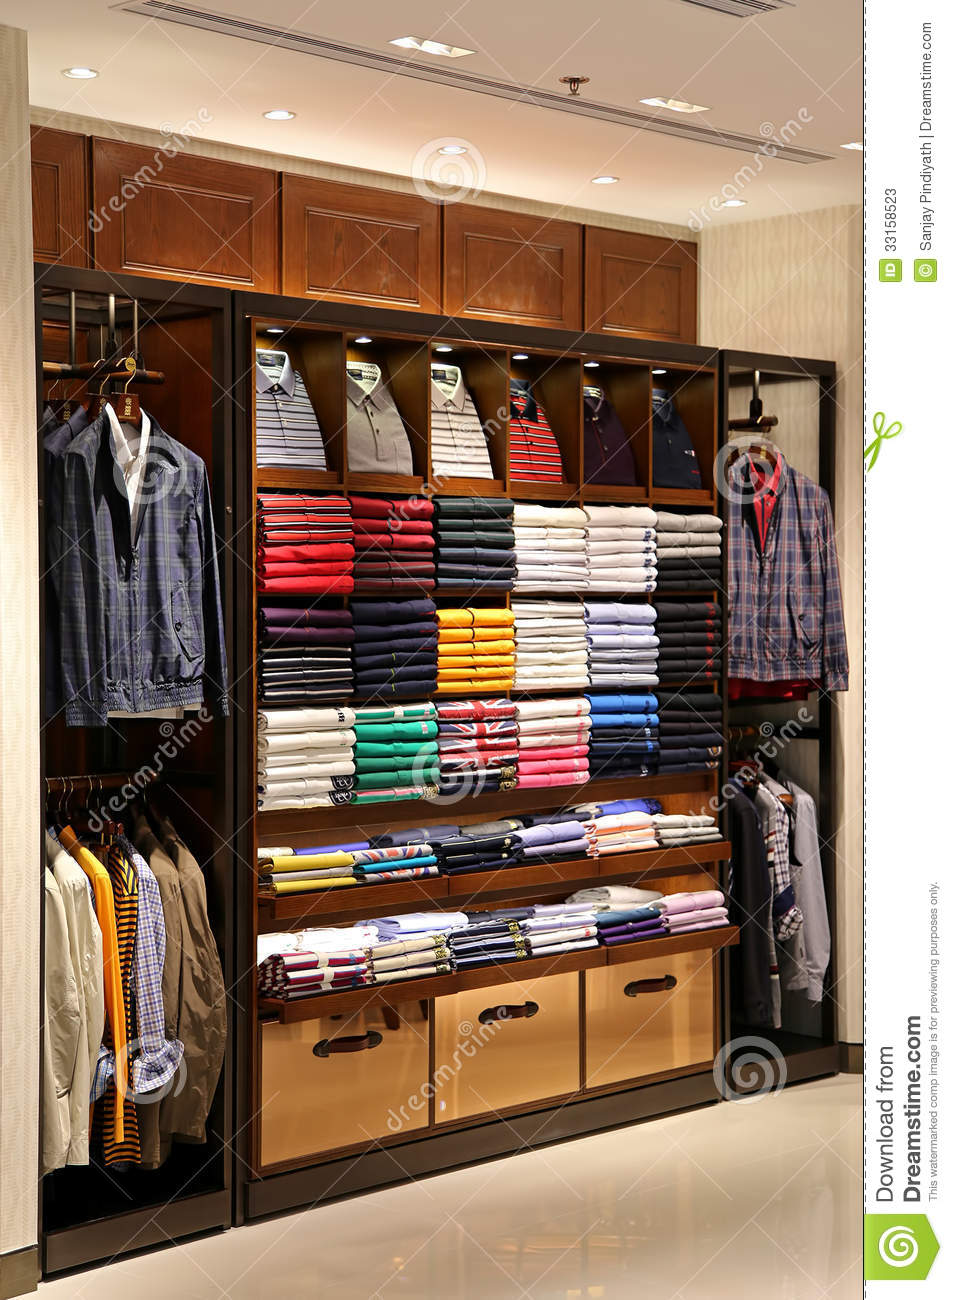 Clothing-Stores-for-Juniors-500x505.jpg